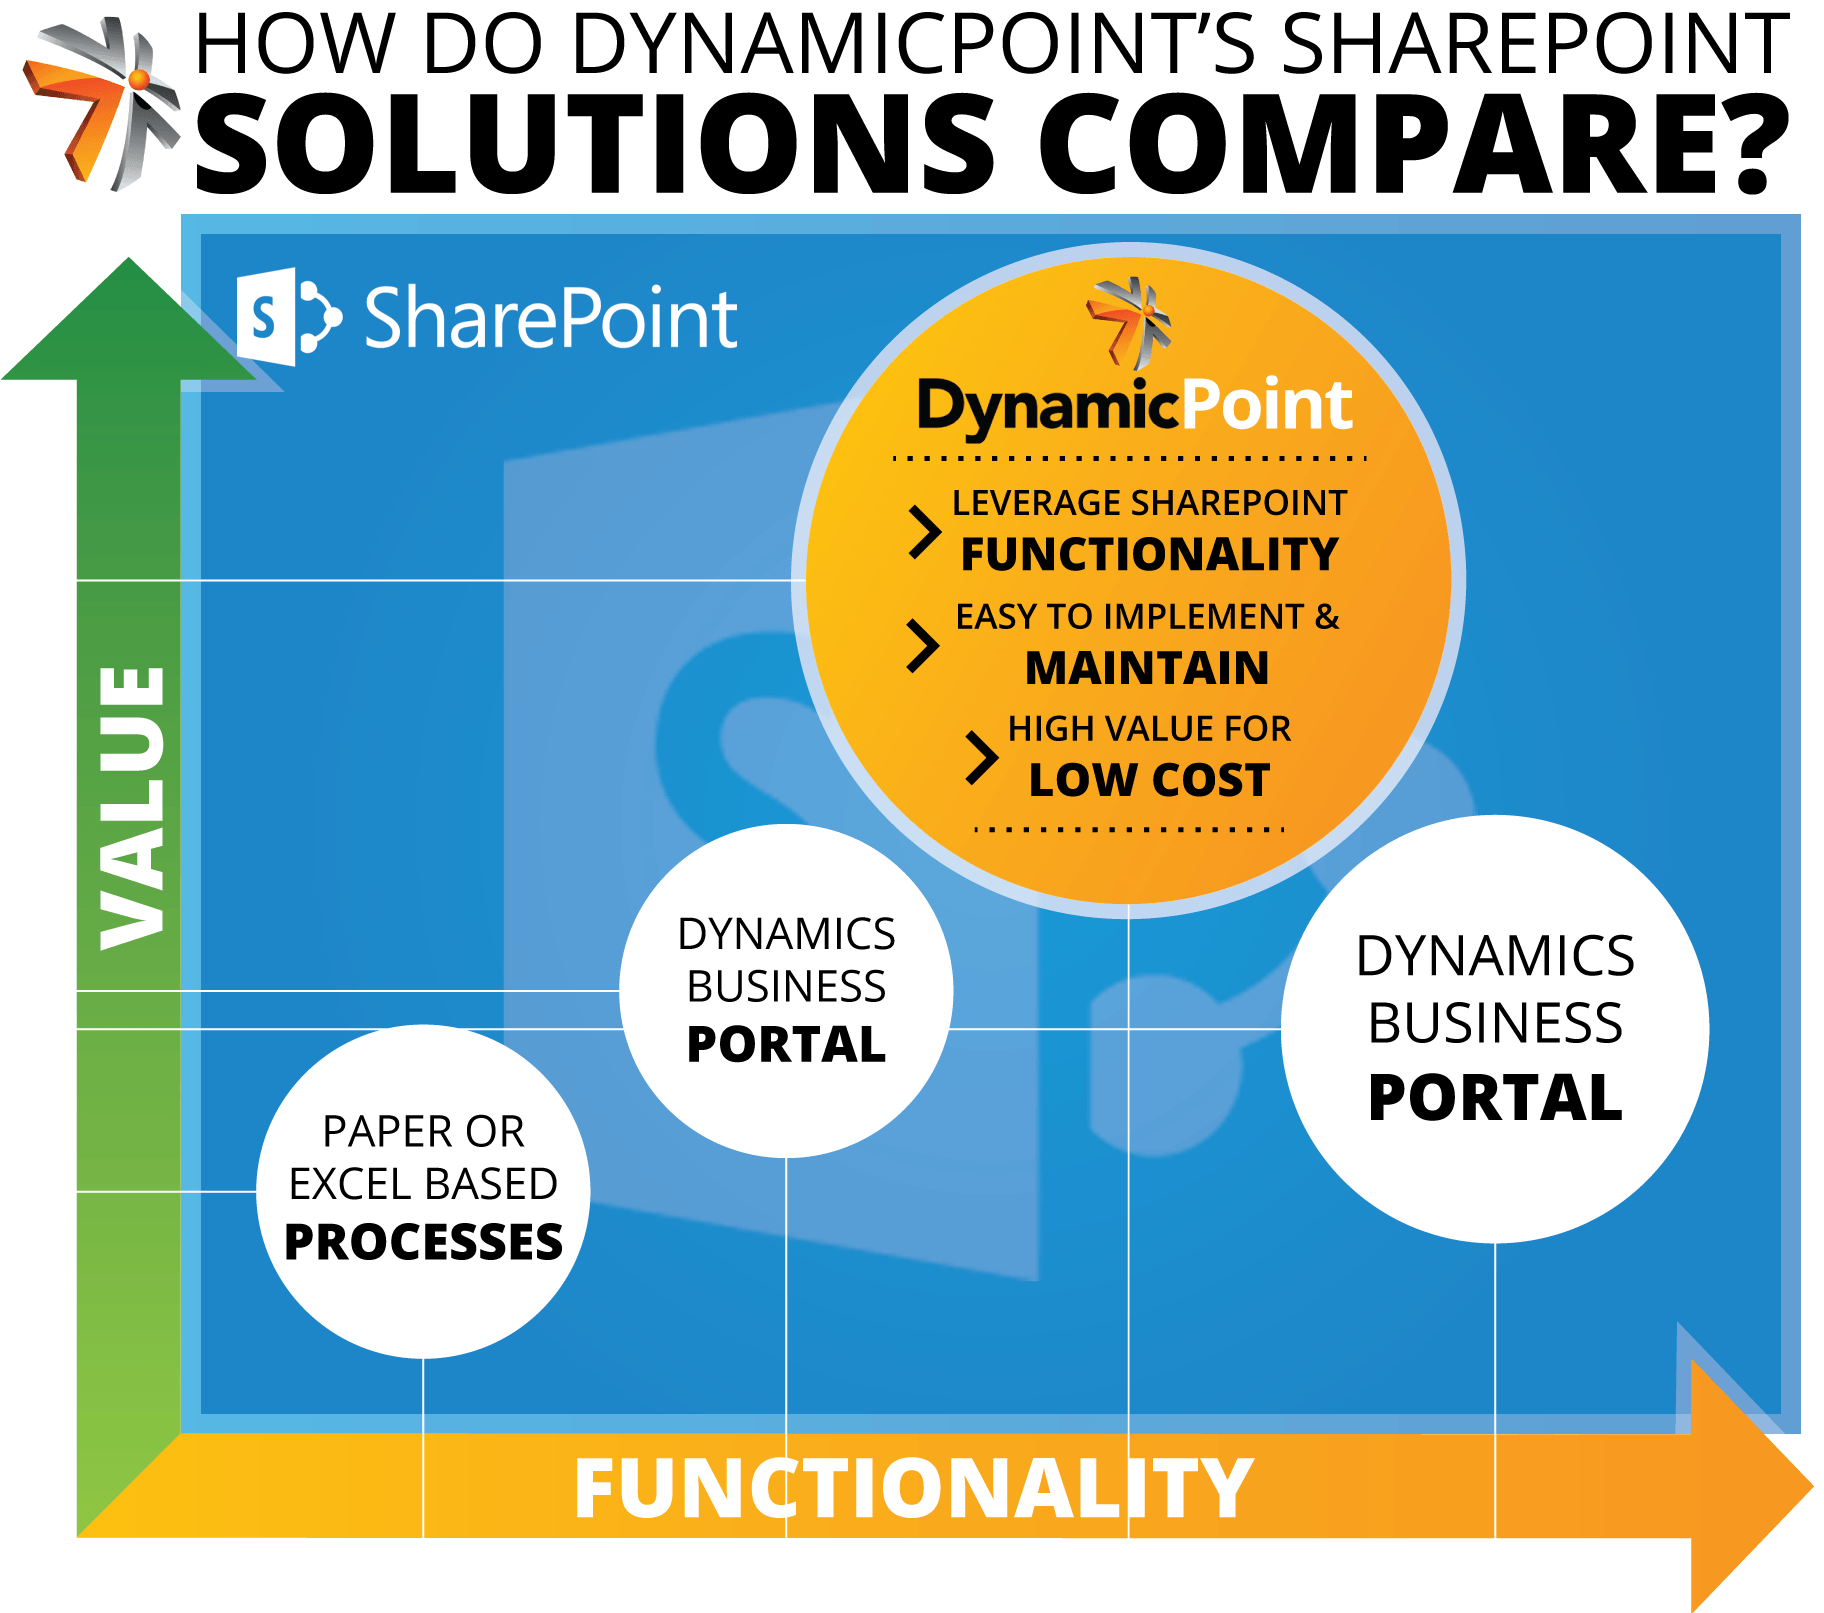 Dynamic Point Sharepoint Solutions Comparison Chart